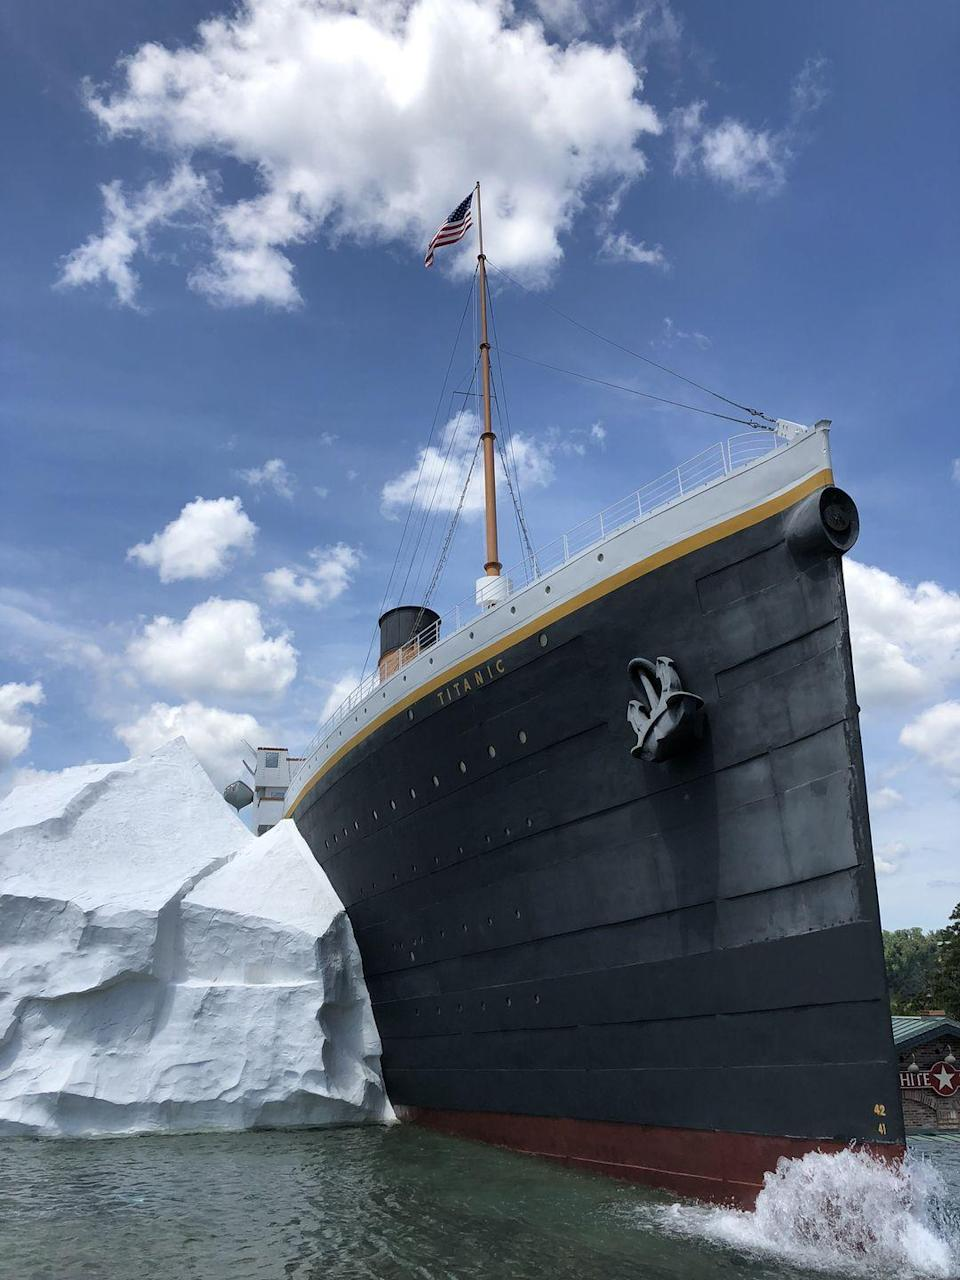 "<p>Pigeon Forge is known as the home to Dollywood, but make sure to visit the <a href=""https://titanicpigeonforge.com/"" rel=""nofollow noopener"" target=""_blank"" data-ylk=""slk:Titanic Museum"" class=""link rapid-noclick-resp"">Titanic Museum</a>. The building is shaped like the front half of the ship (iceberg and all) and inside you'll see be immersed in treasures from the ship, see a replica of the grand stairway, and stick your hand in water the freezing temps of the Northern Atlantic. </p>"